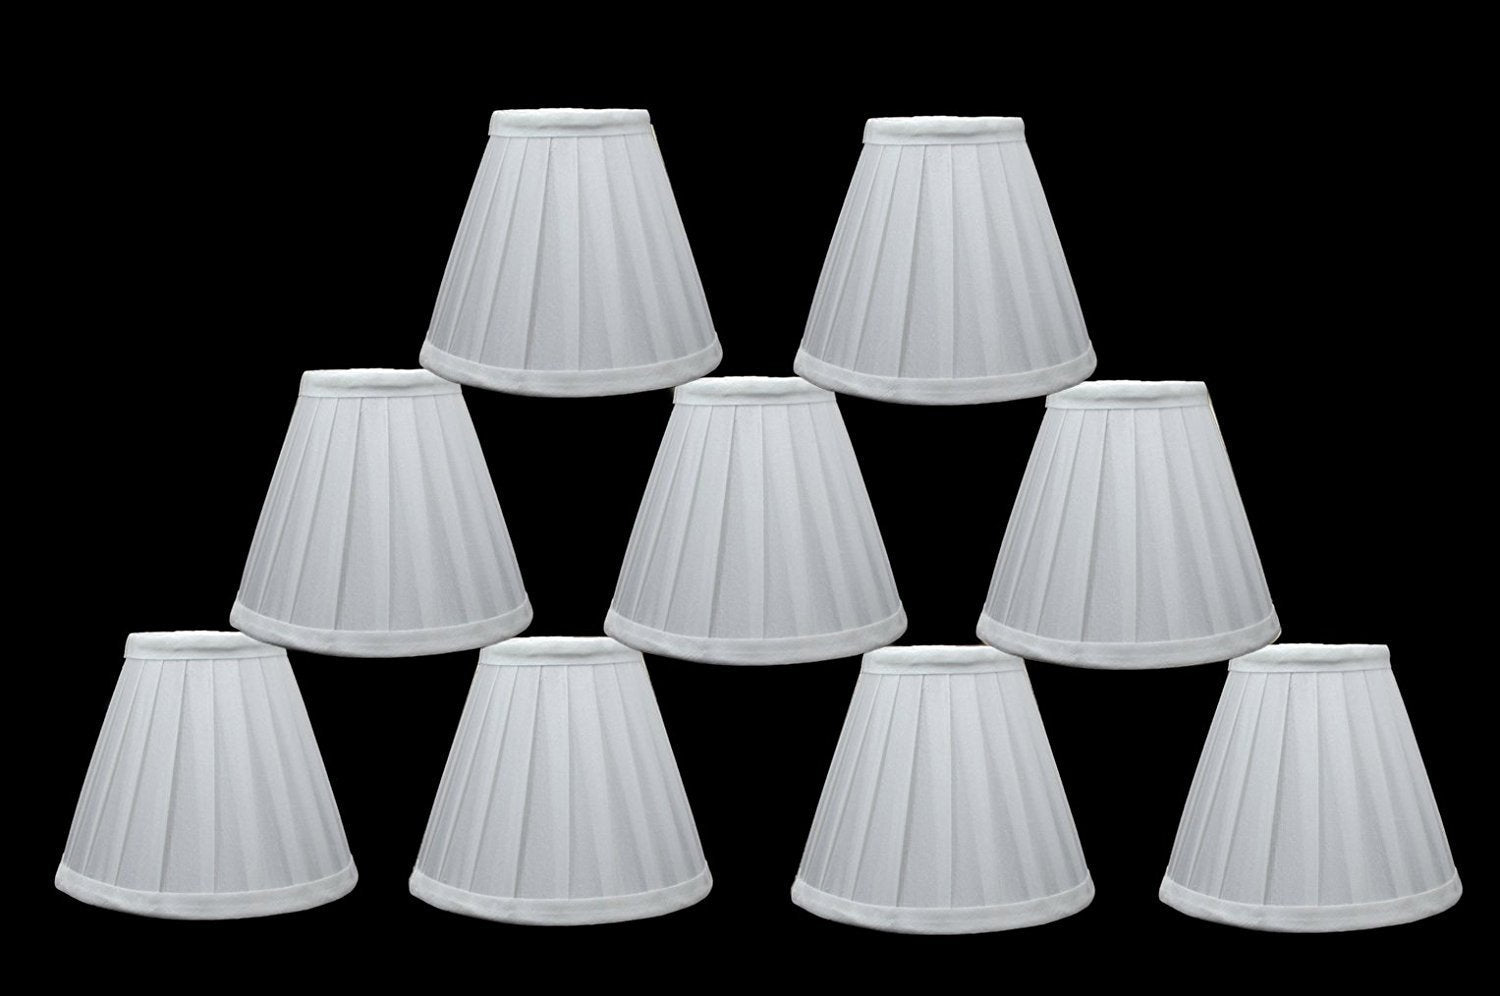 Side Pleat 6-inch Chandelier Lamp Shades - 2 Colors